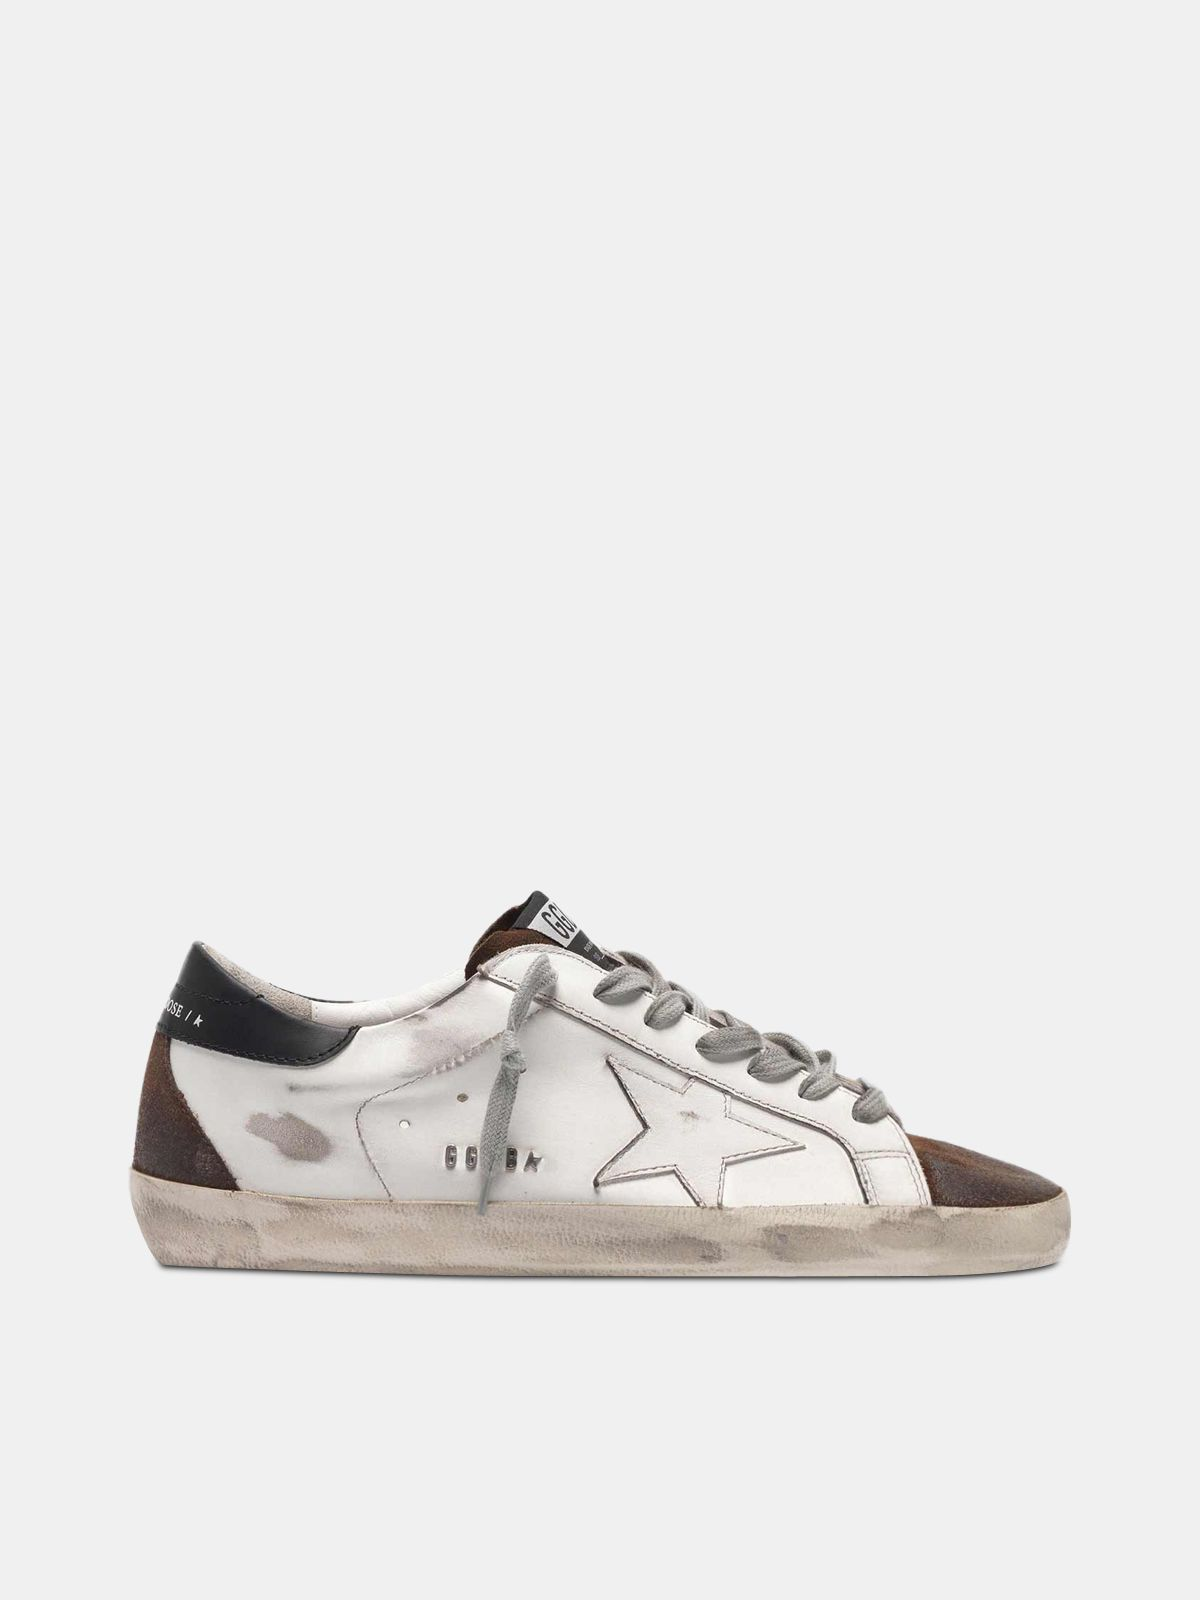 Golden Goose - Two-tone white and brown Super-Star sneakers in